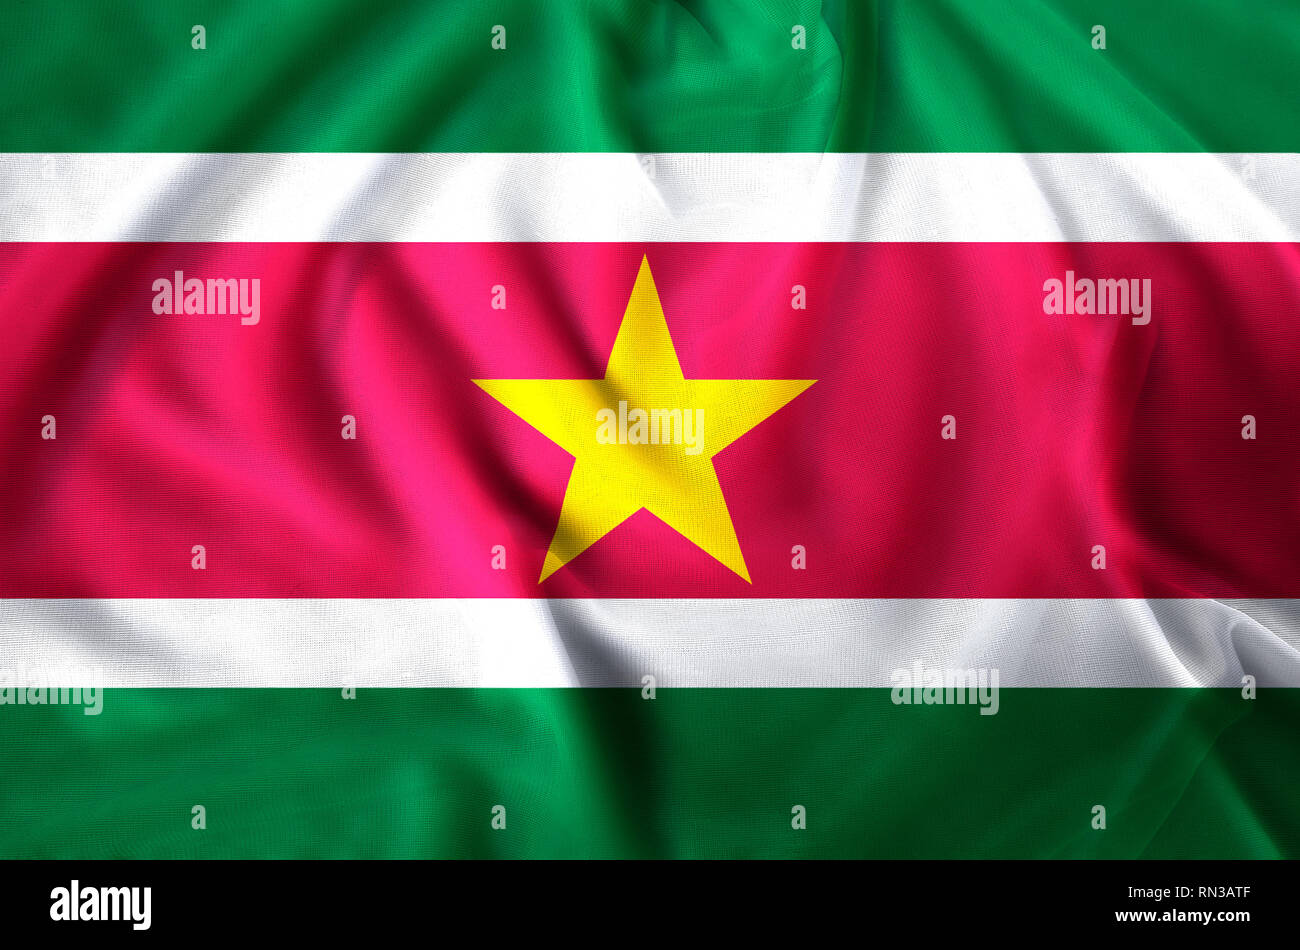 Suriname modern and realistic closeup flag illustration. Perfect for background or texture purposes. - Stock Image